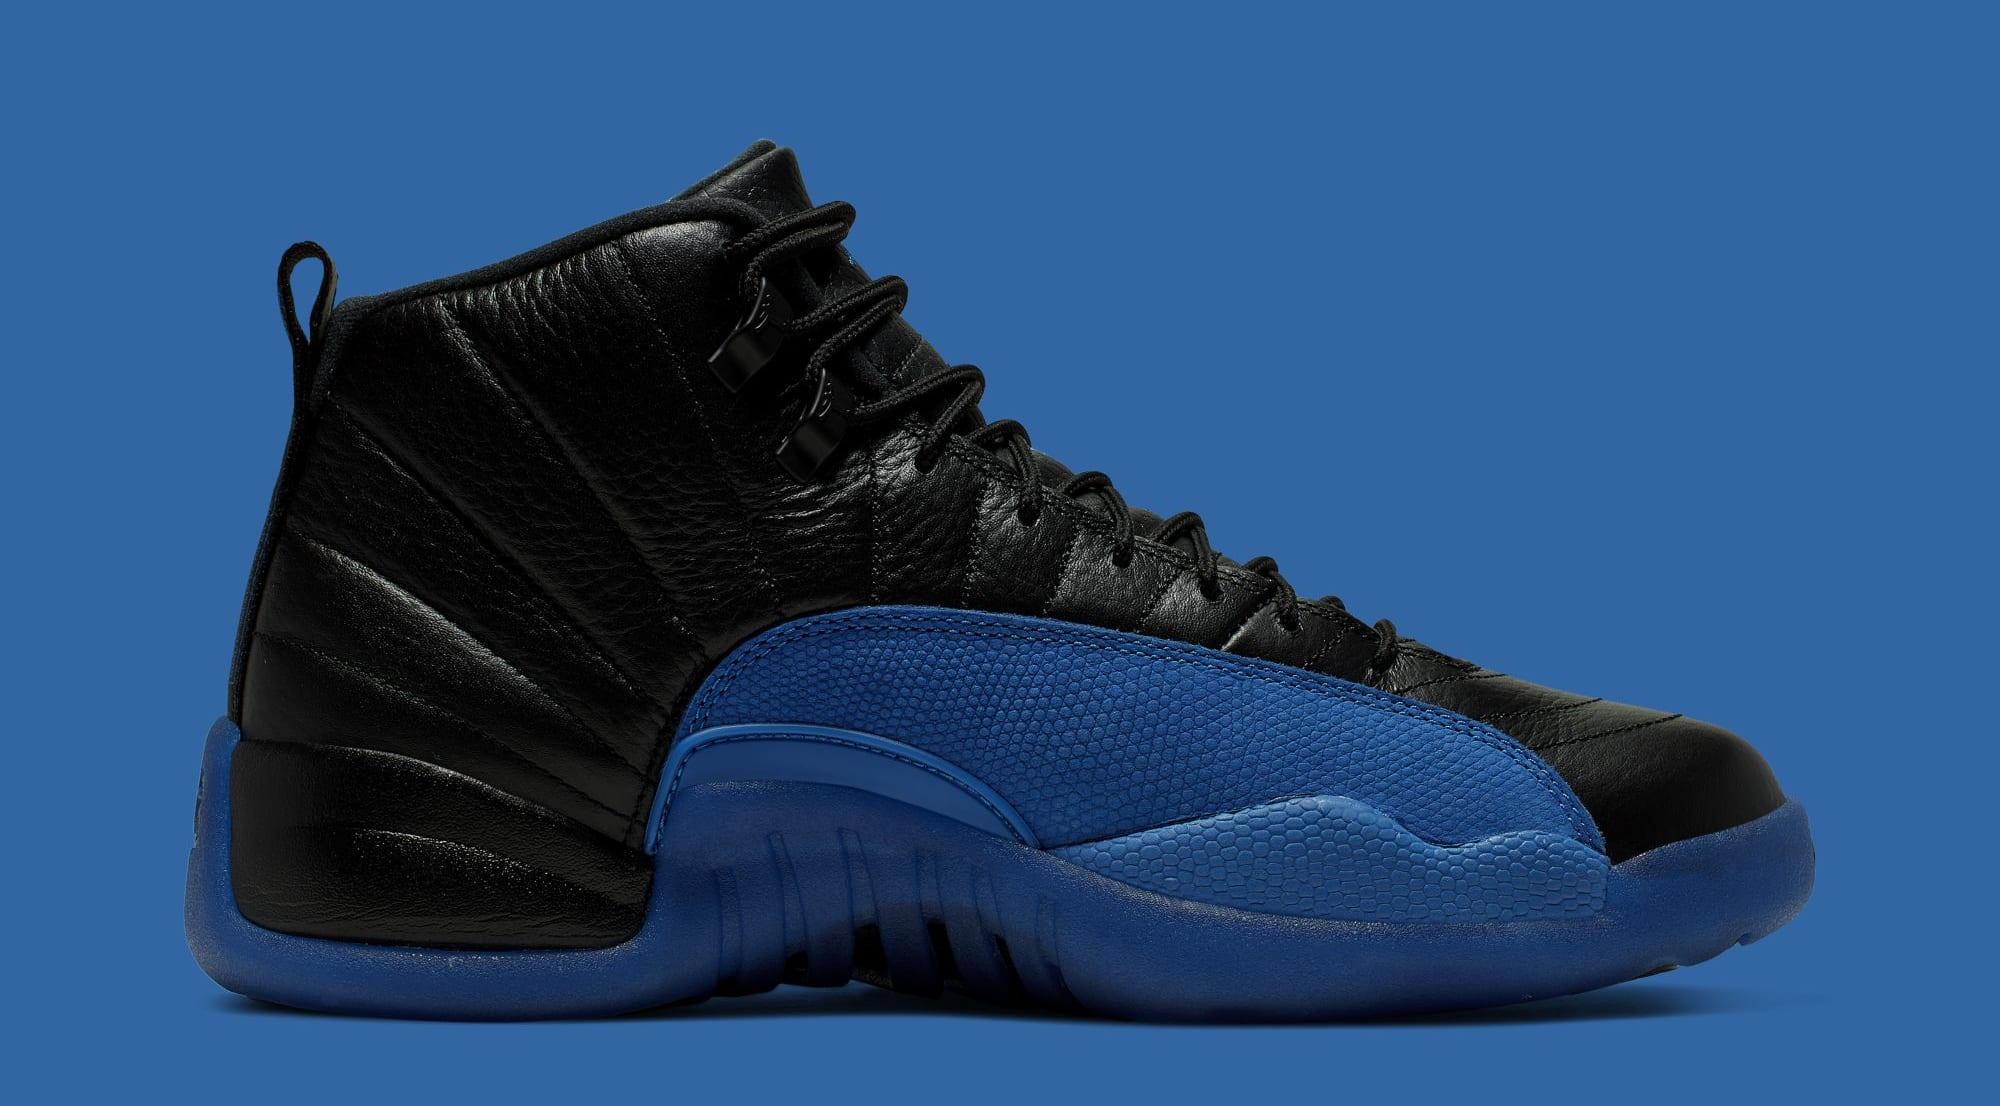 cheaper c0288 24eb7 Air Jordan 12 Retro 'Game Royal' Release Date 130690-014 ...